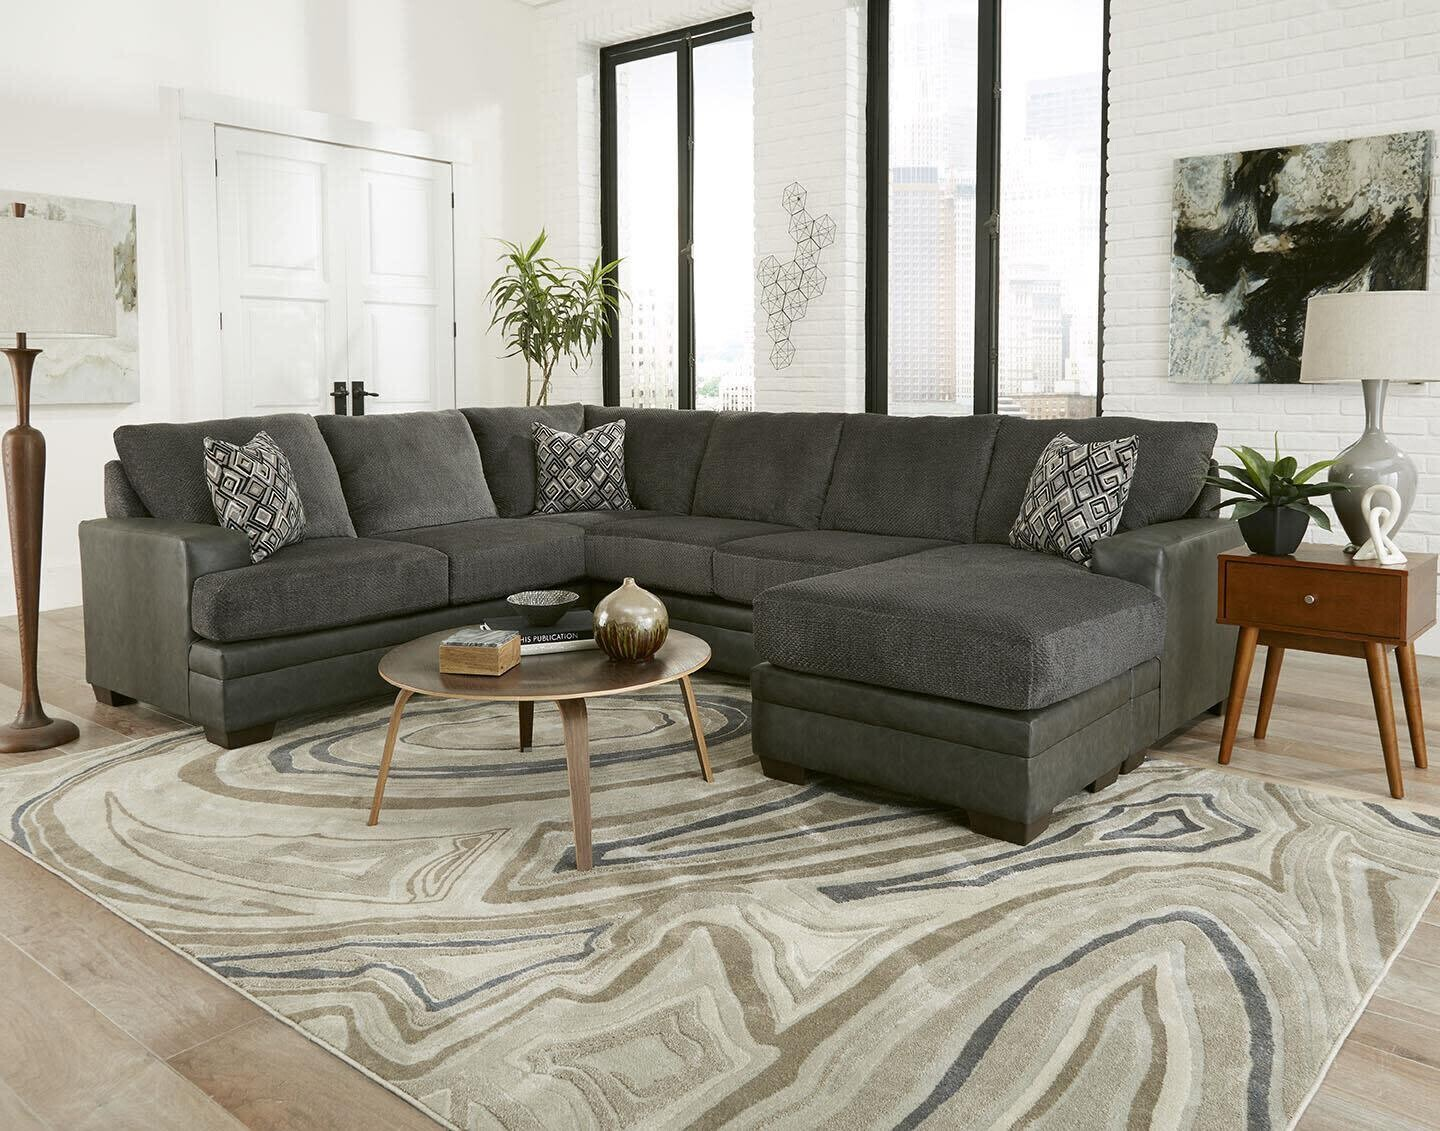 Delta 2720 Stallion Charcoal 3Pc Sectional